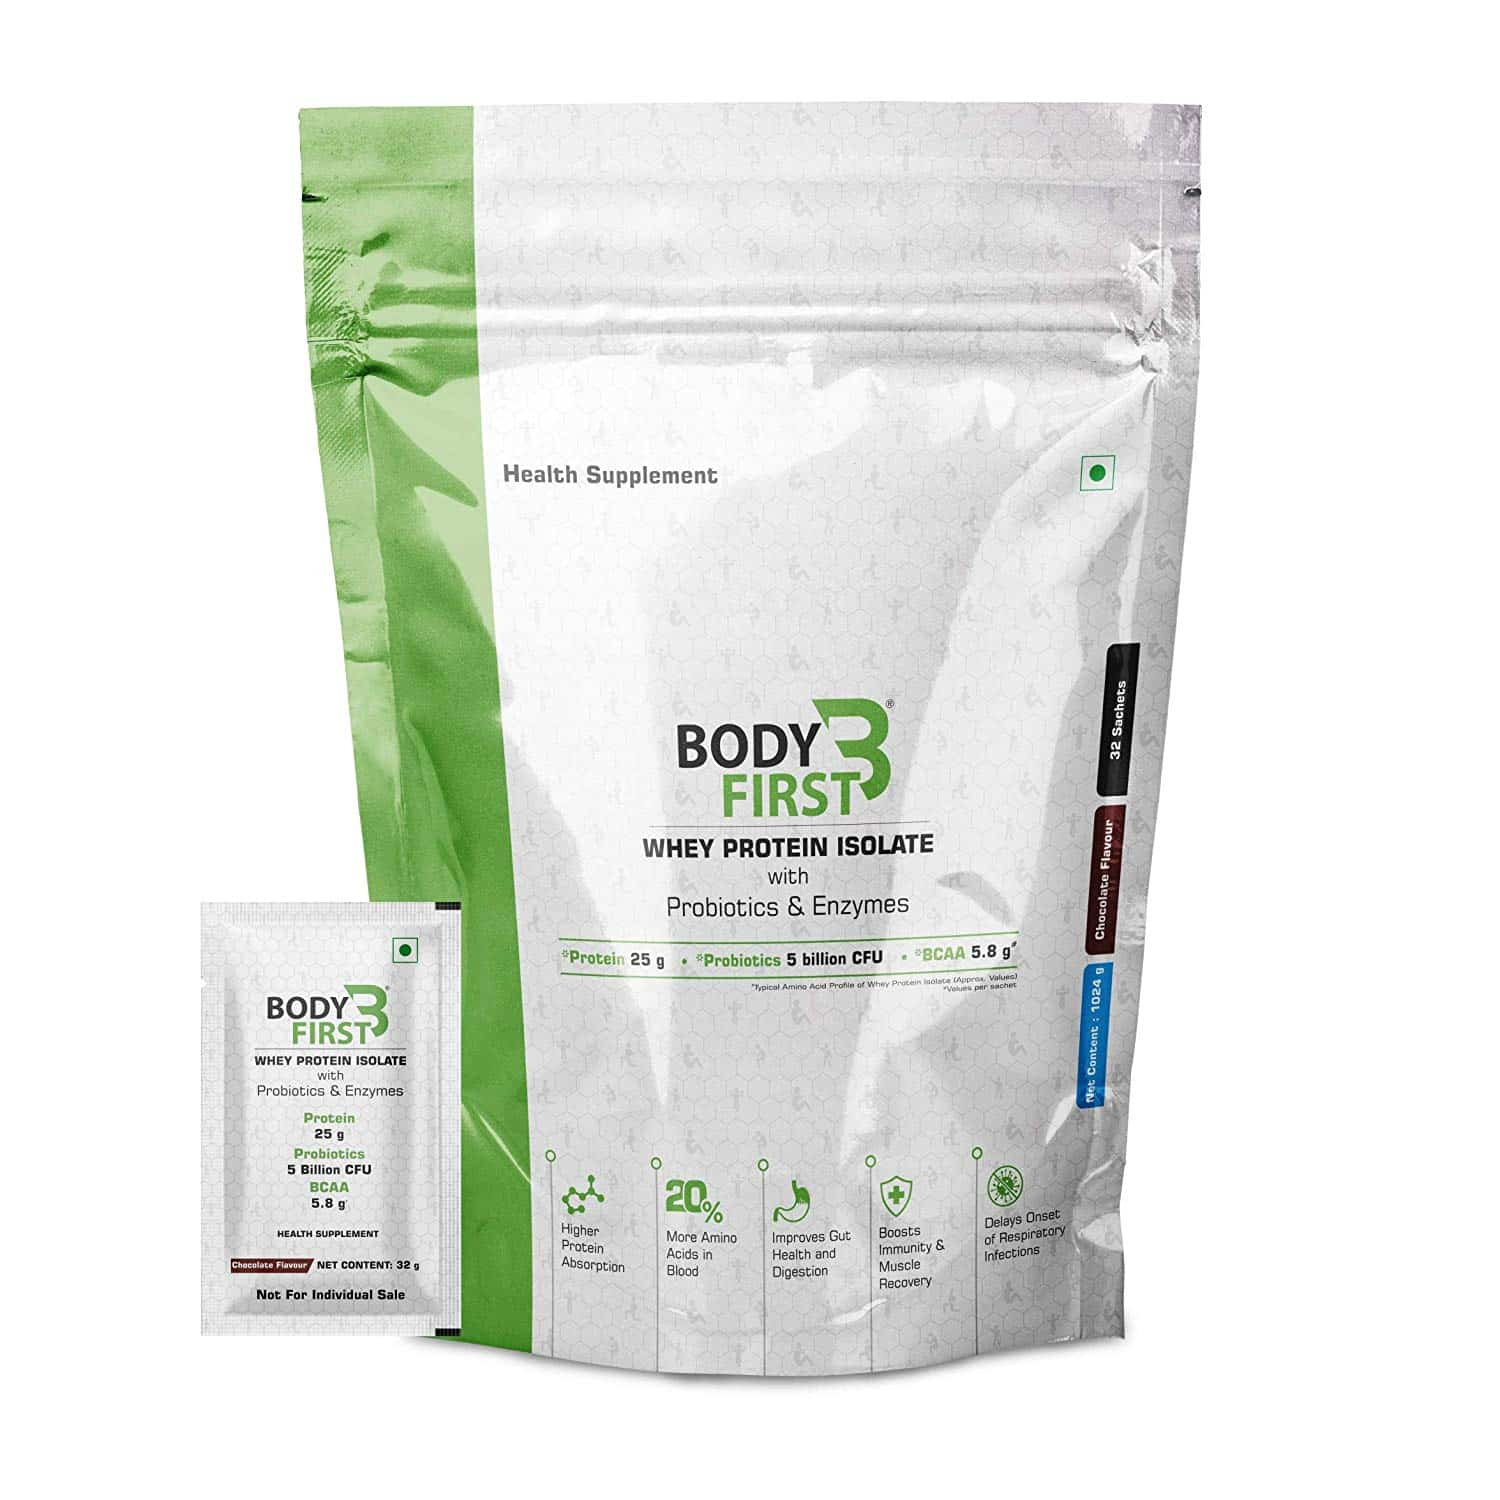 BodyFirst-Whey-Protein-Isolate-with-Probiotics-and-Enzymes-32-Servings-Chocolate